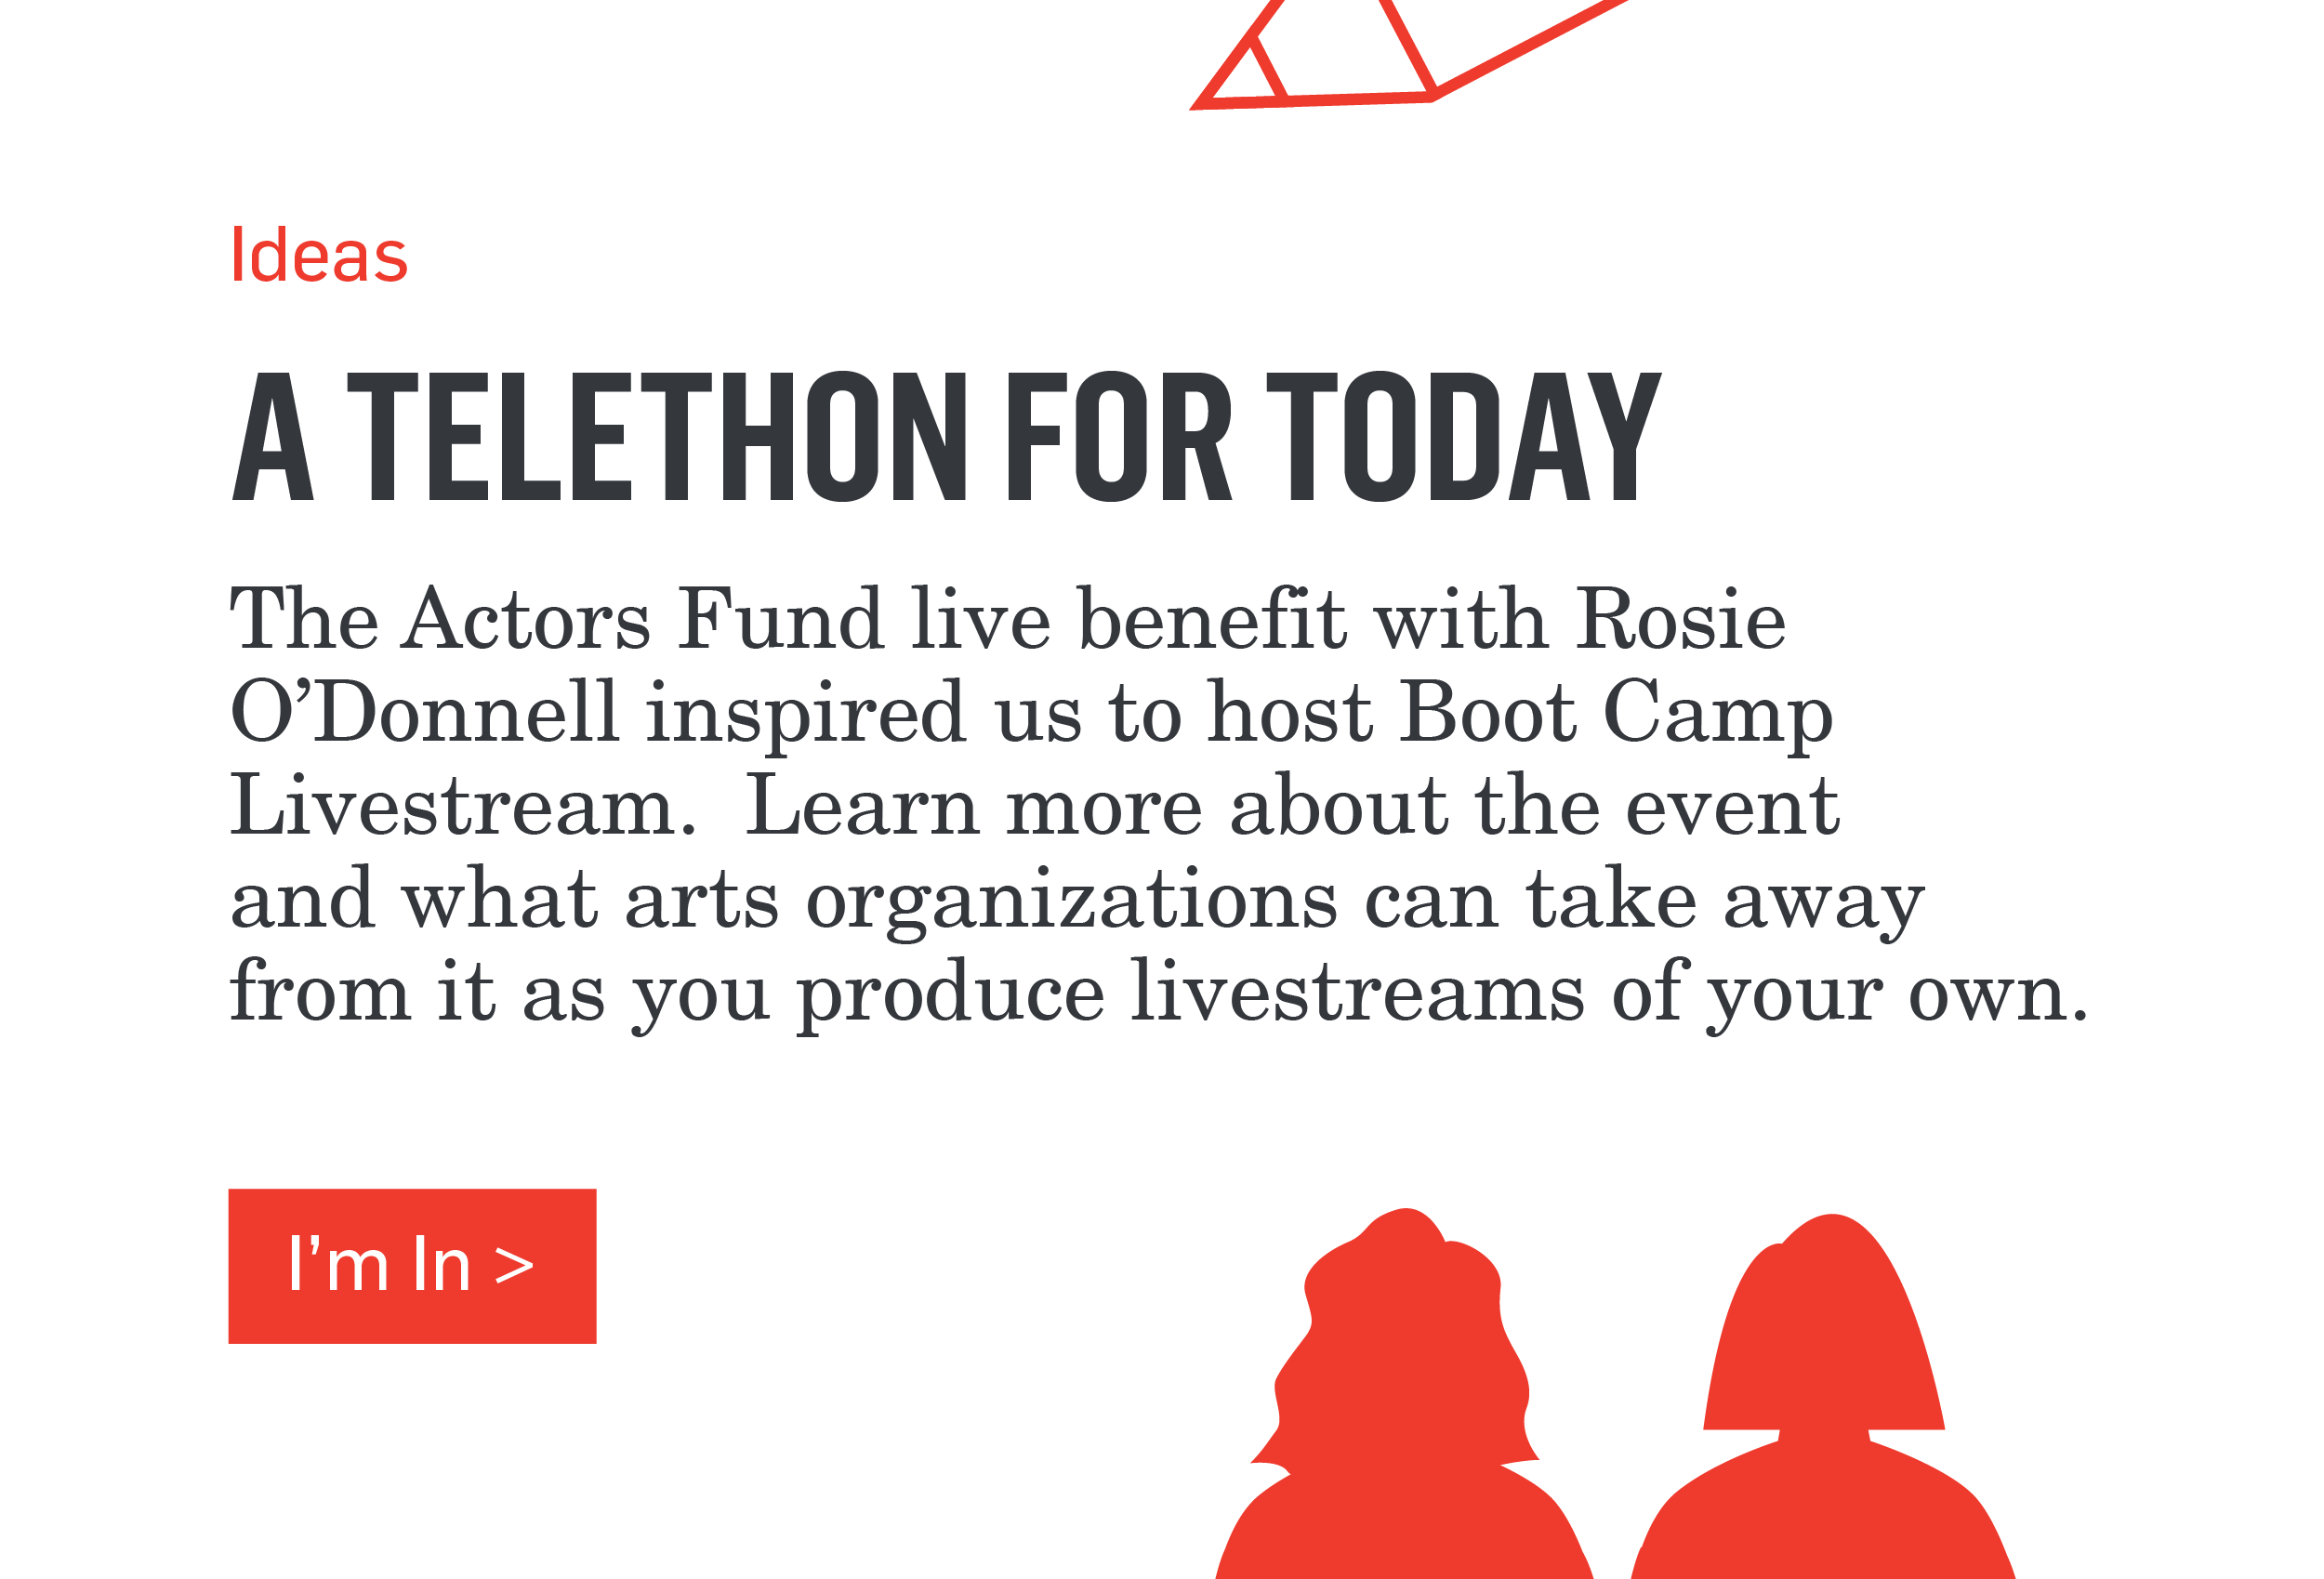 Ideas - A TELETHON FOR TODAY - The Actors Fund benefit with Rosie O'Donnell inspired us to host Boot Camp Livestream. Learn more about the event and what arts organizations can take away from it as you produce livestreams of your own. >>>I'm In>>>